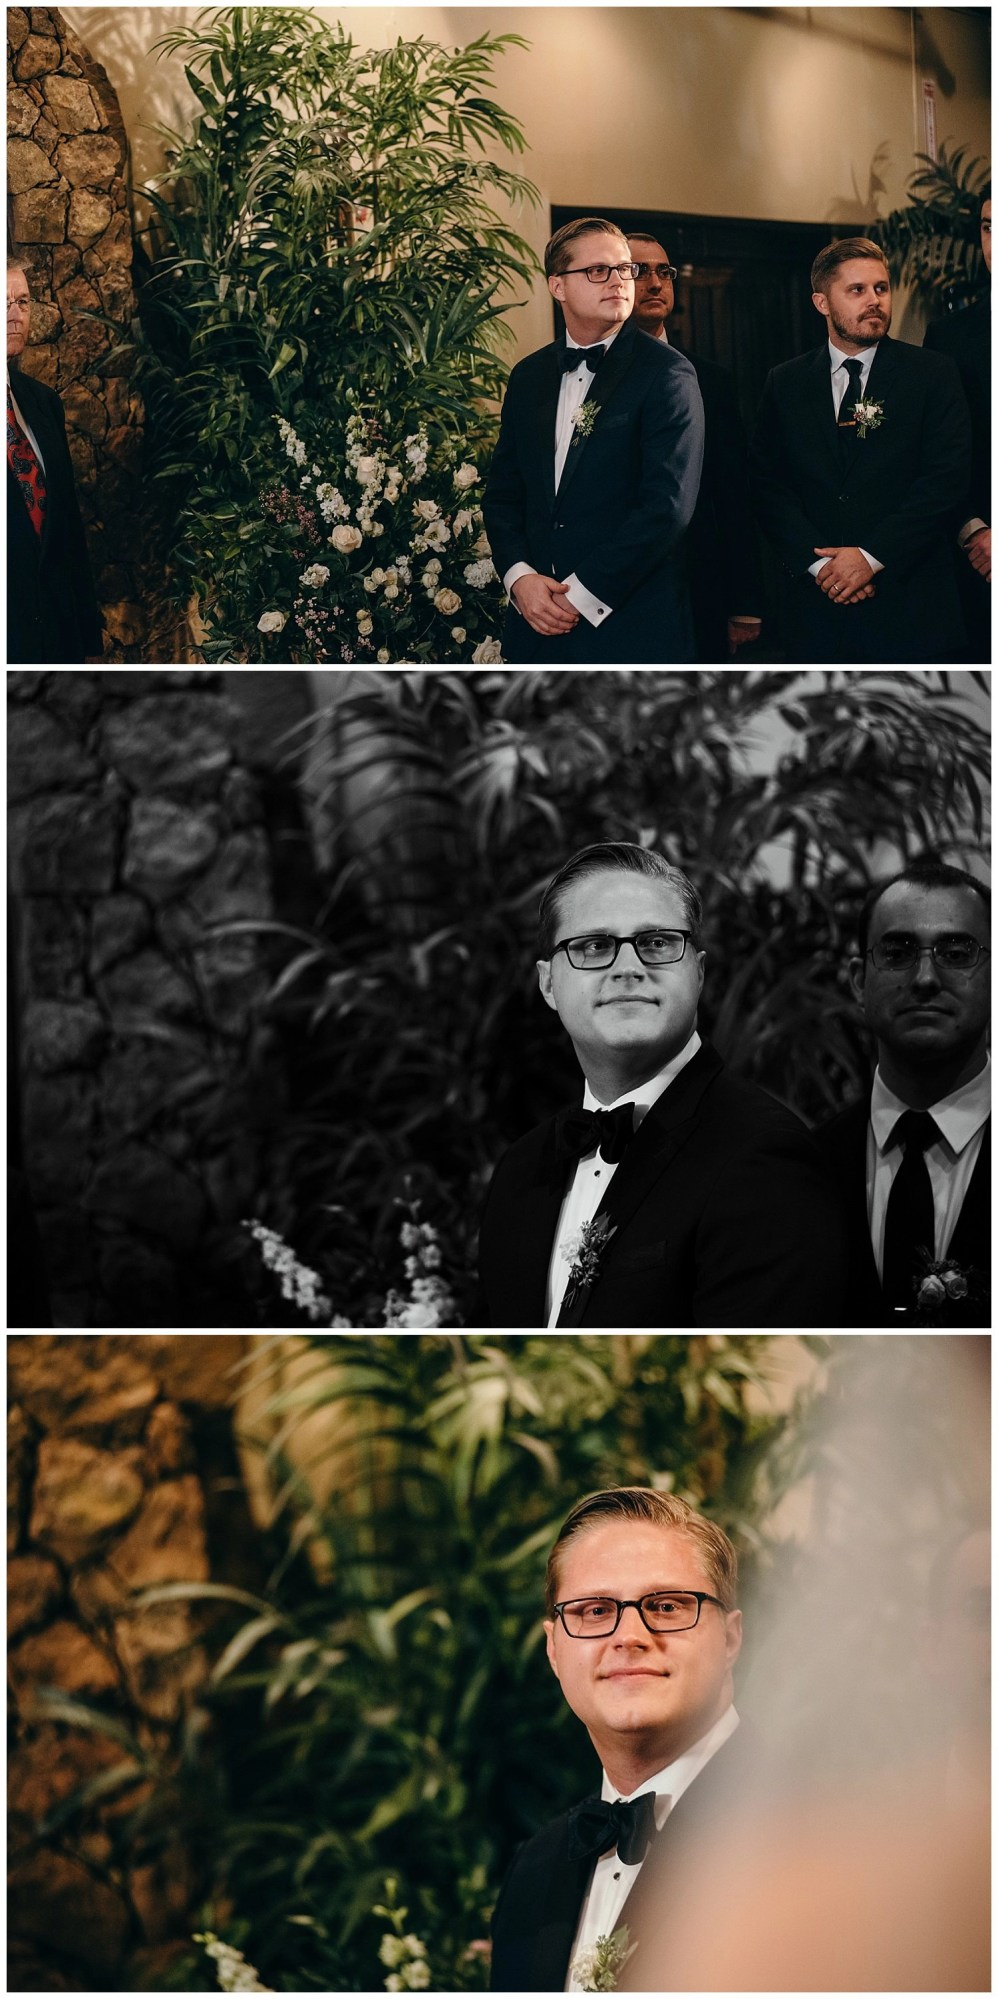 groom waiting for bride coming down aisle